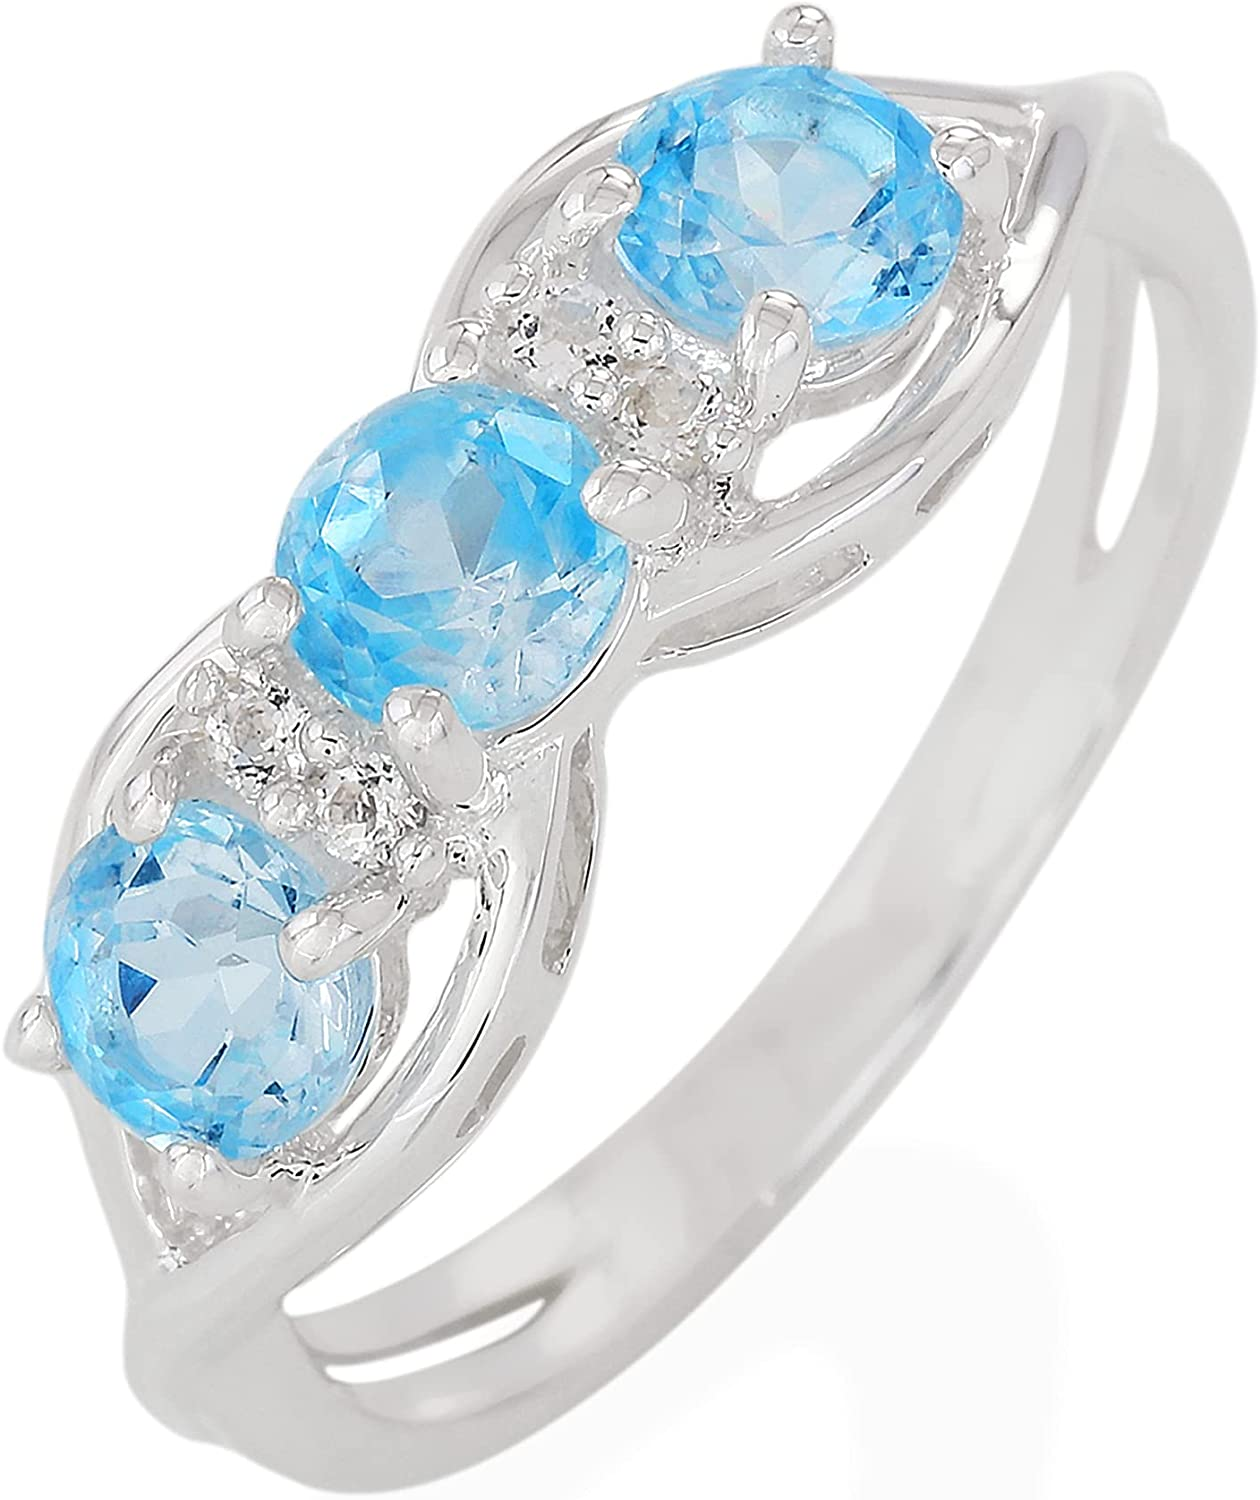 ATELIER Excellence PINKCITY Genuine Free shipping Blue Topaz 3 Si 925 Stone Ring Sterling